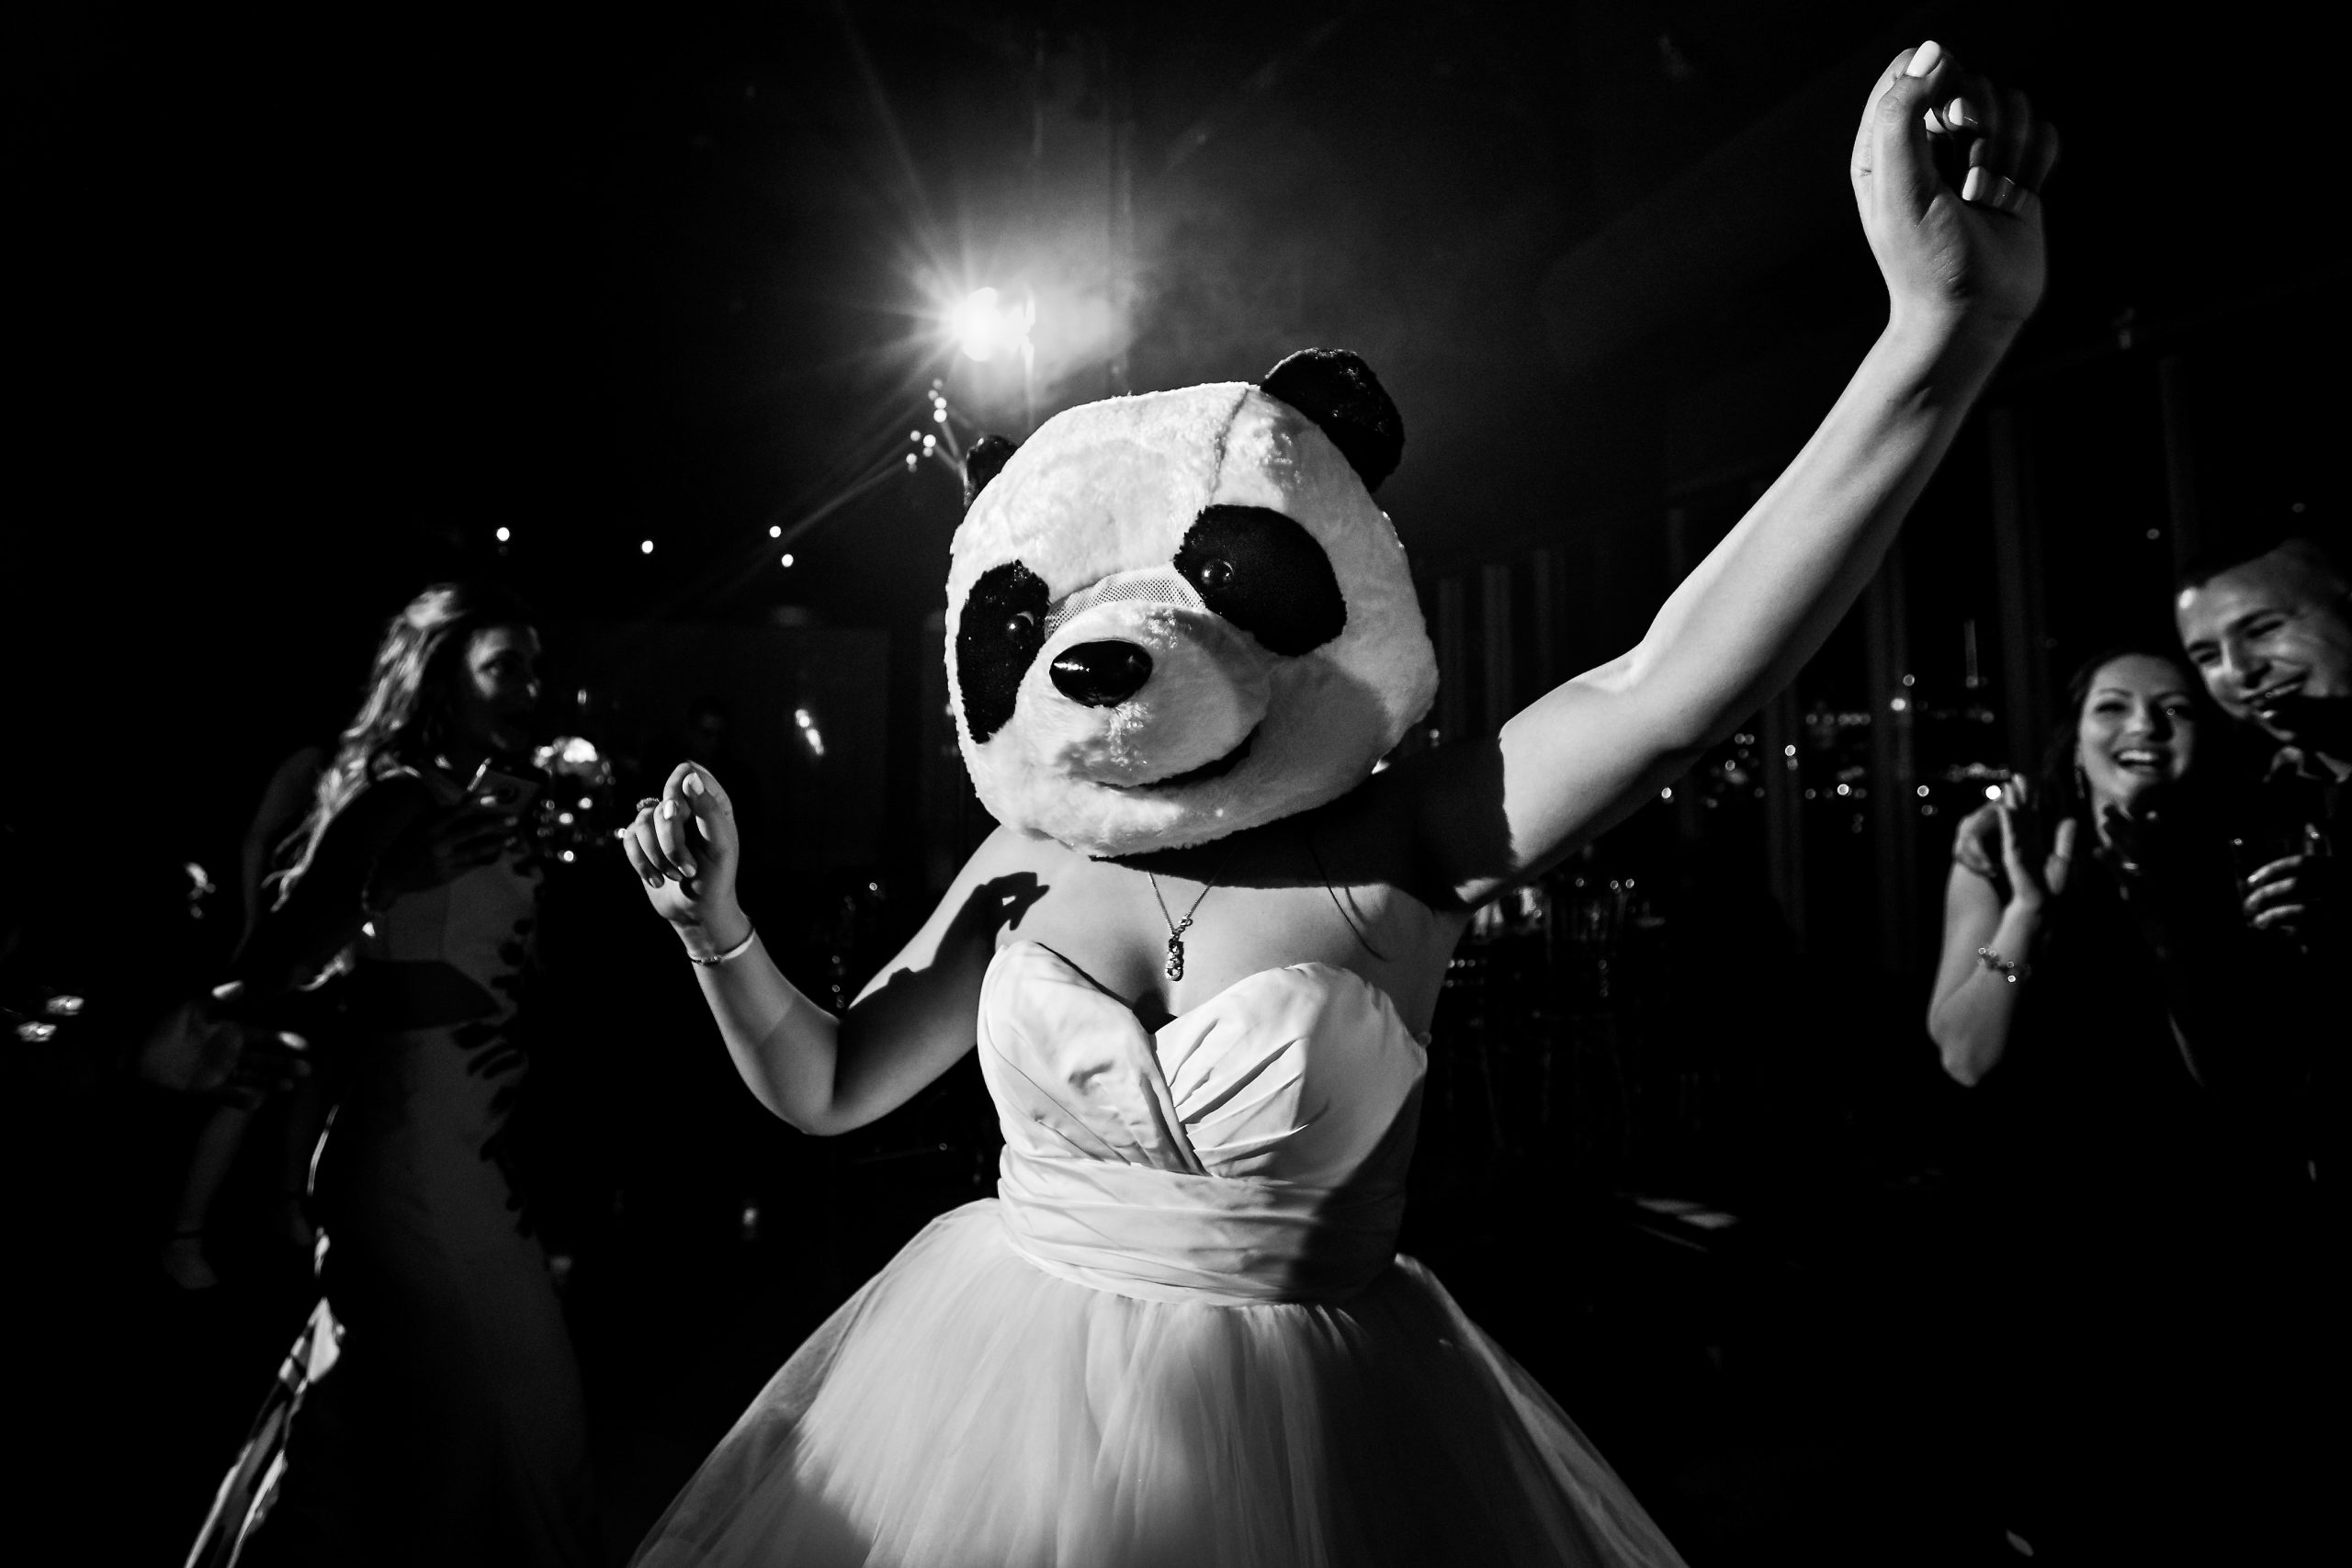 Bride dances while wearing panda costume over head